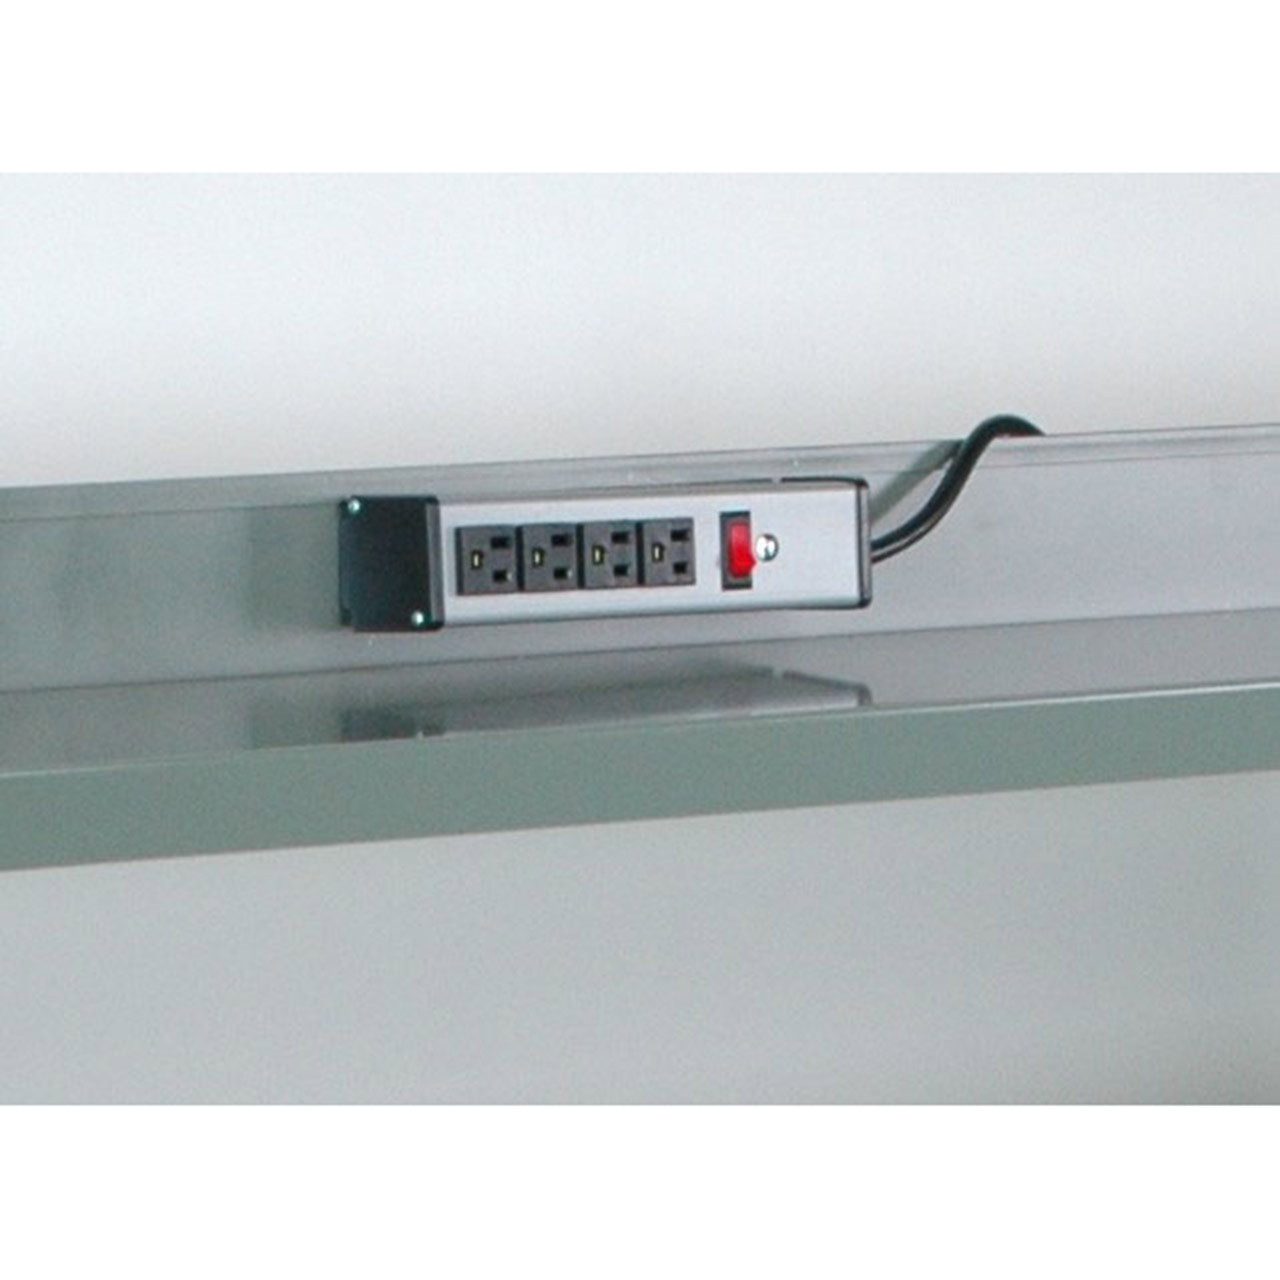 Workbench Power Outlet Strip